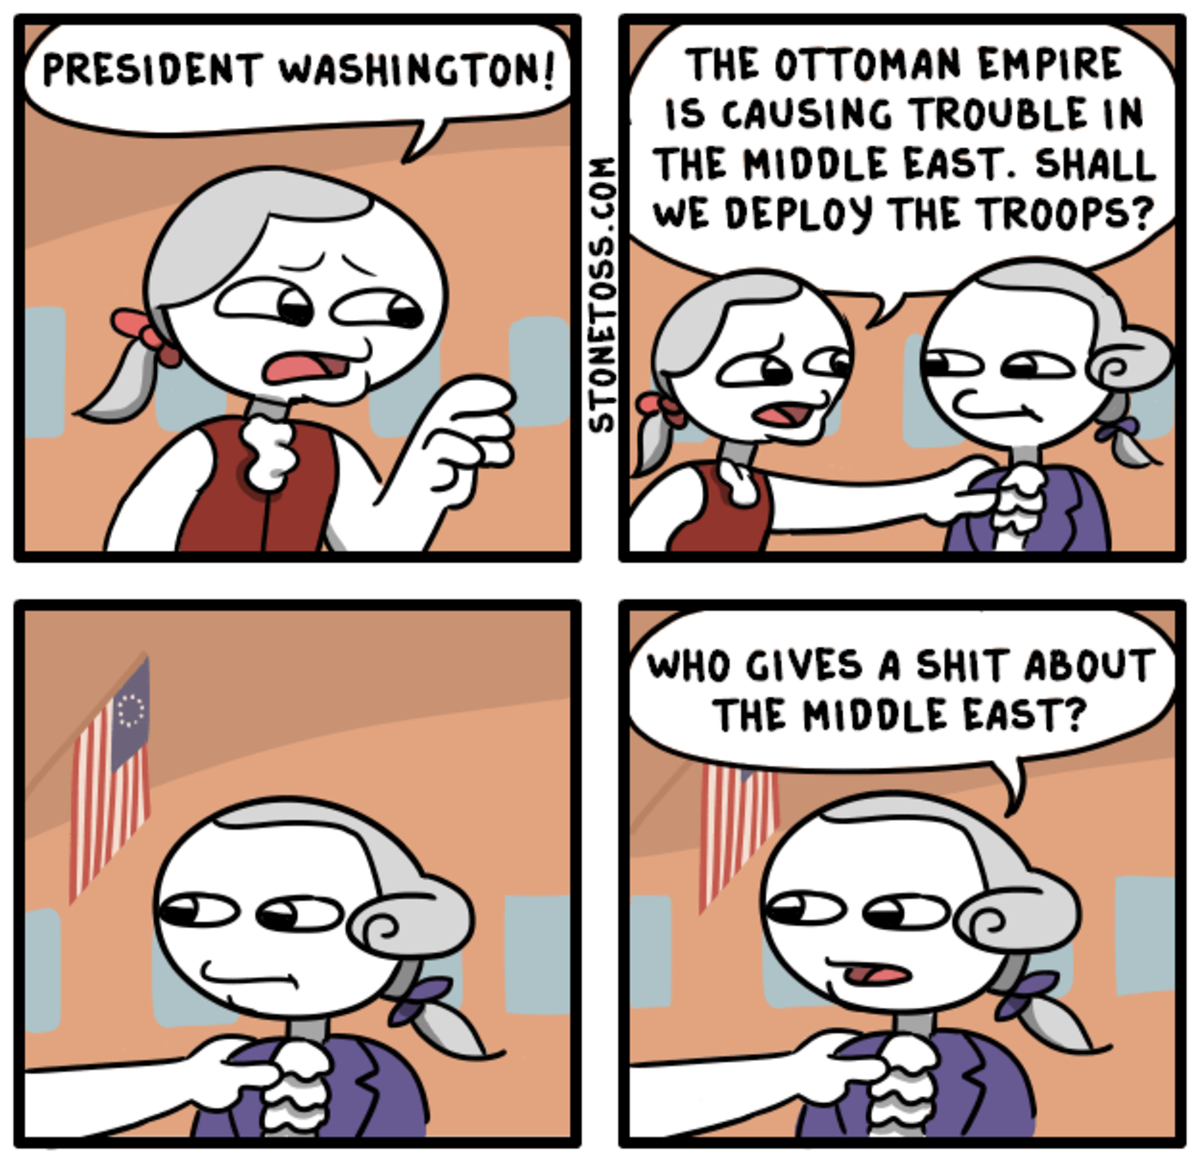 """Founding Bothers. See more comics, visit: . PRESIDENT ' '. i, OTTOMAN EMPIRE TROUBLE Ill riff] """"IDLE EAST... SHALL lth' ) TROOPS? GIVES A SIEHT ABOUT NOBLE EAST"""